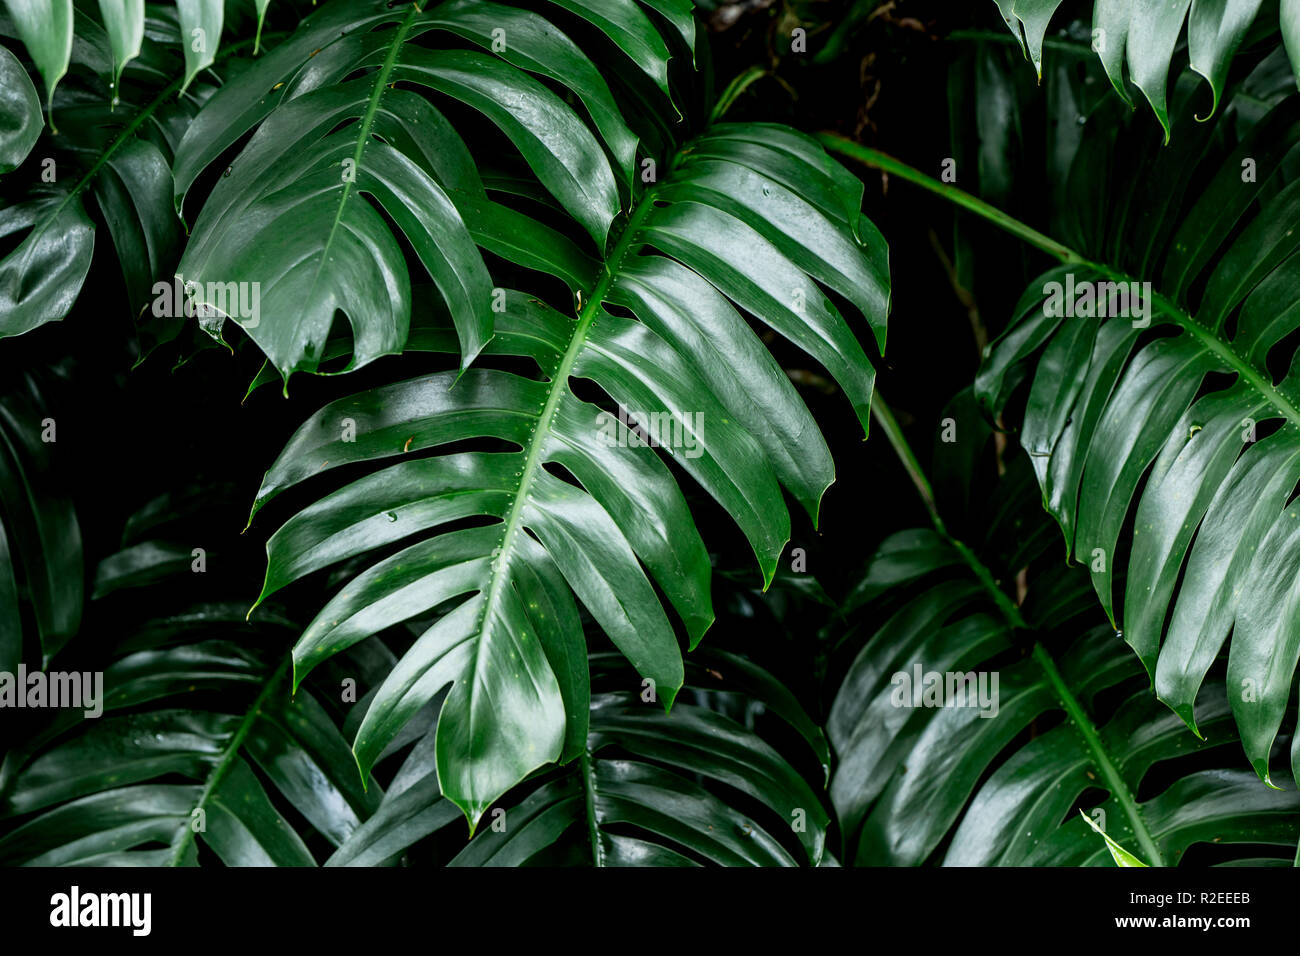 Tropical Deep Forest Leaves Jungle Leaves Green Plant Wet In Rainforest Stock Photo Alamy Are you searching for tropical leaves background images? https www alamy com tropical deep forest leaves jungle leaves green plant wet in rainforest image225282803 html